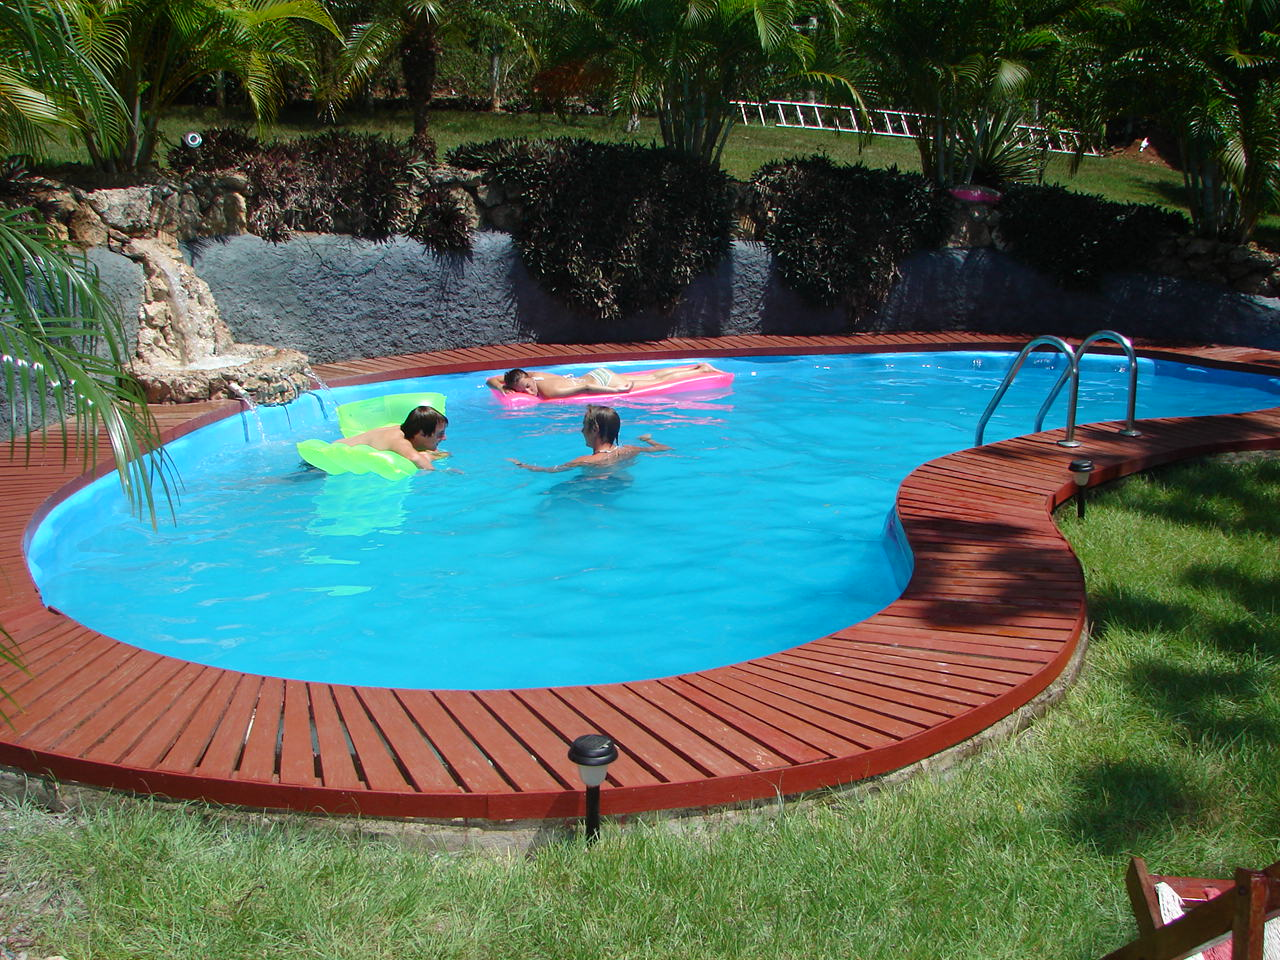 Backyard landscaping ideas swimming pool design for Buy swimming pool